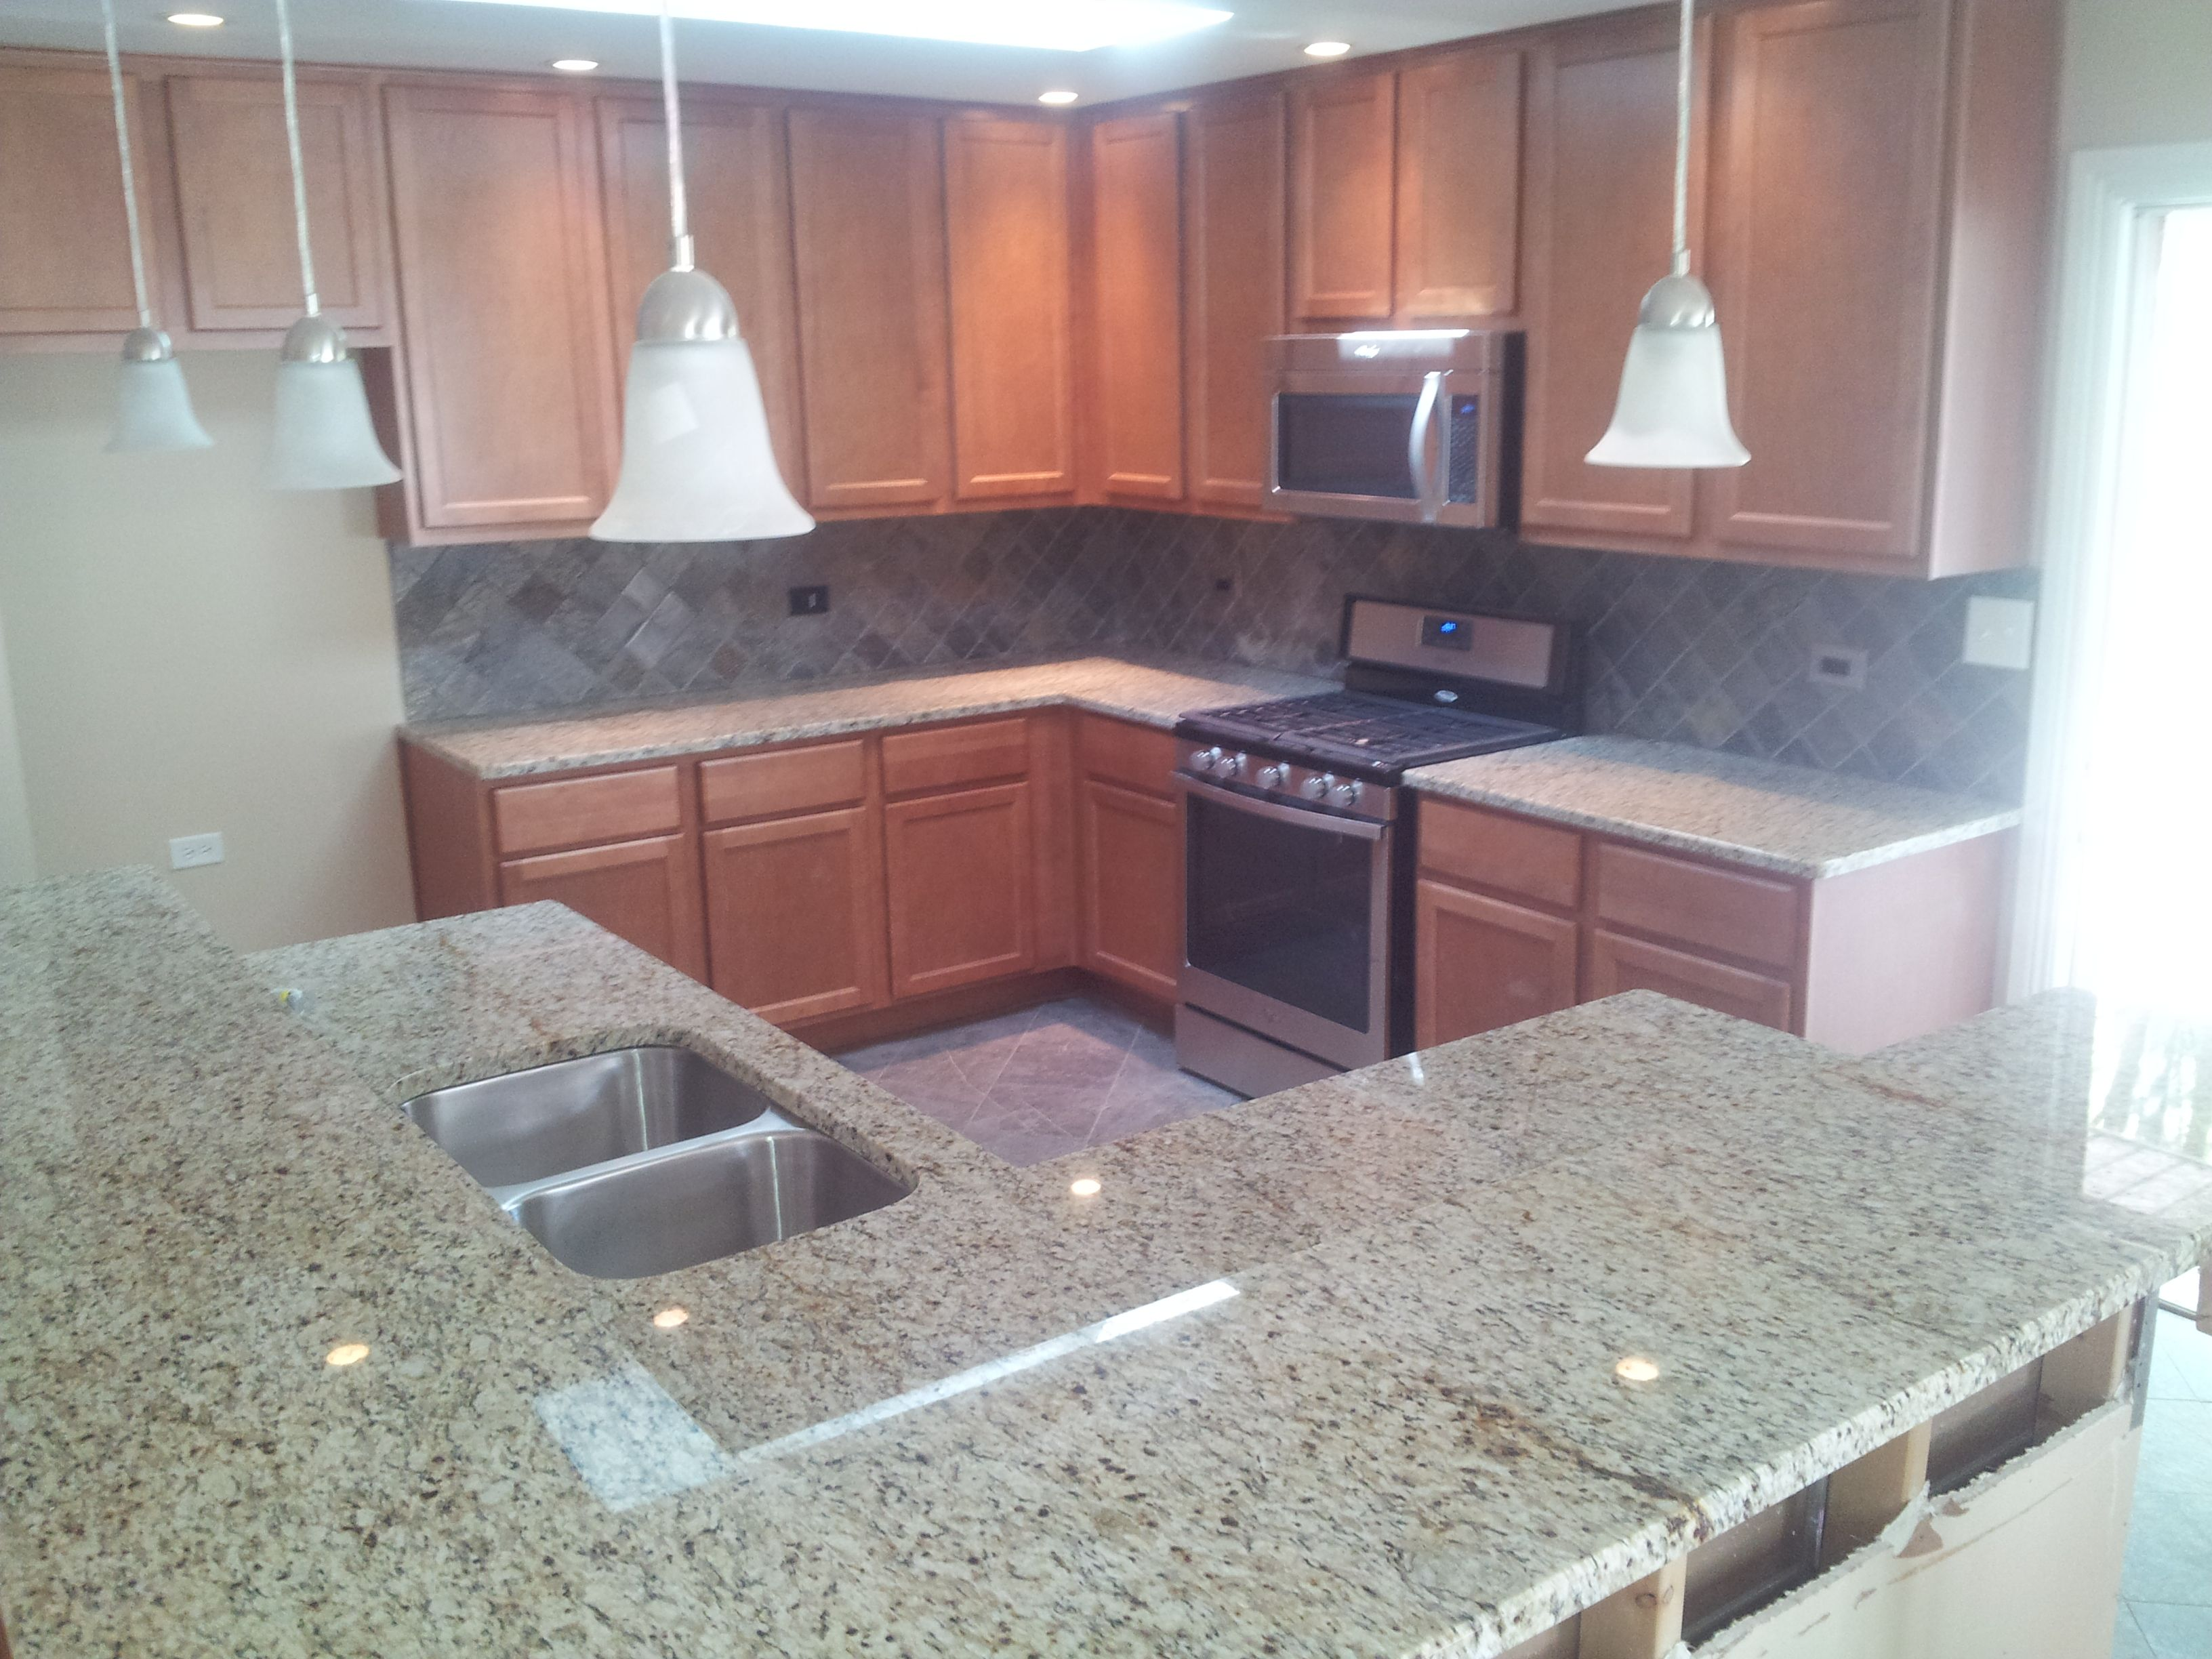 Art Granite Countertops Inc 1020 Lunt Ave Unit F Schaumburg Il 60193 Tel 847 923 1323 F Kitchen Backsplash Designs Granite Countertops Countertops